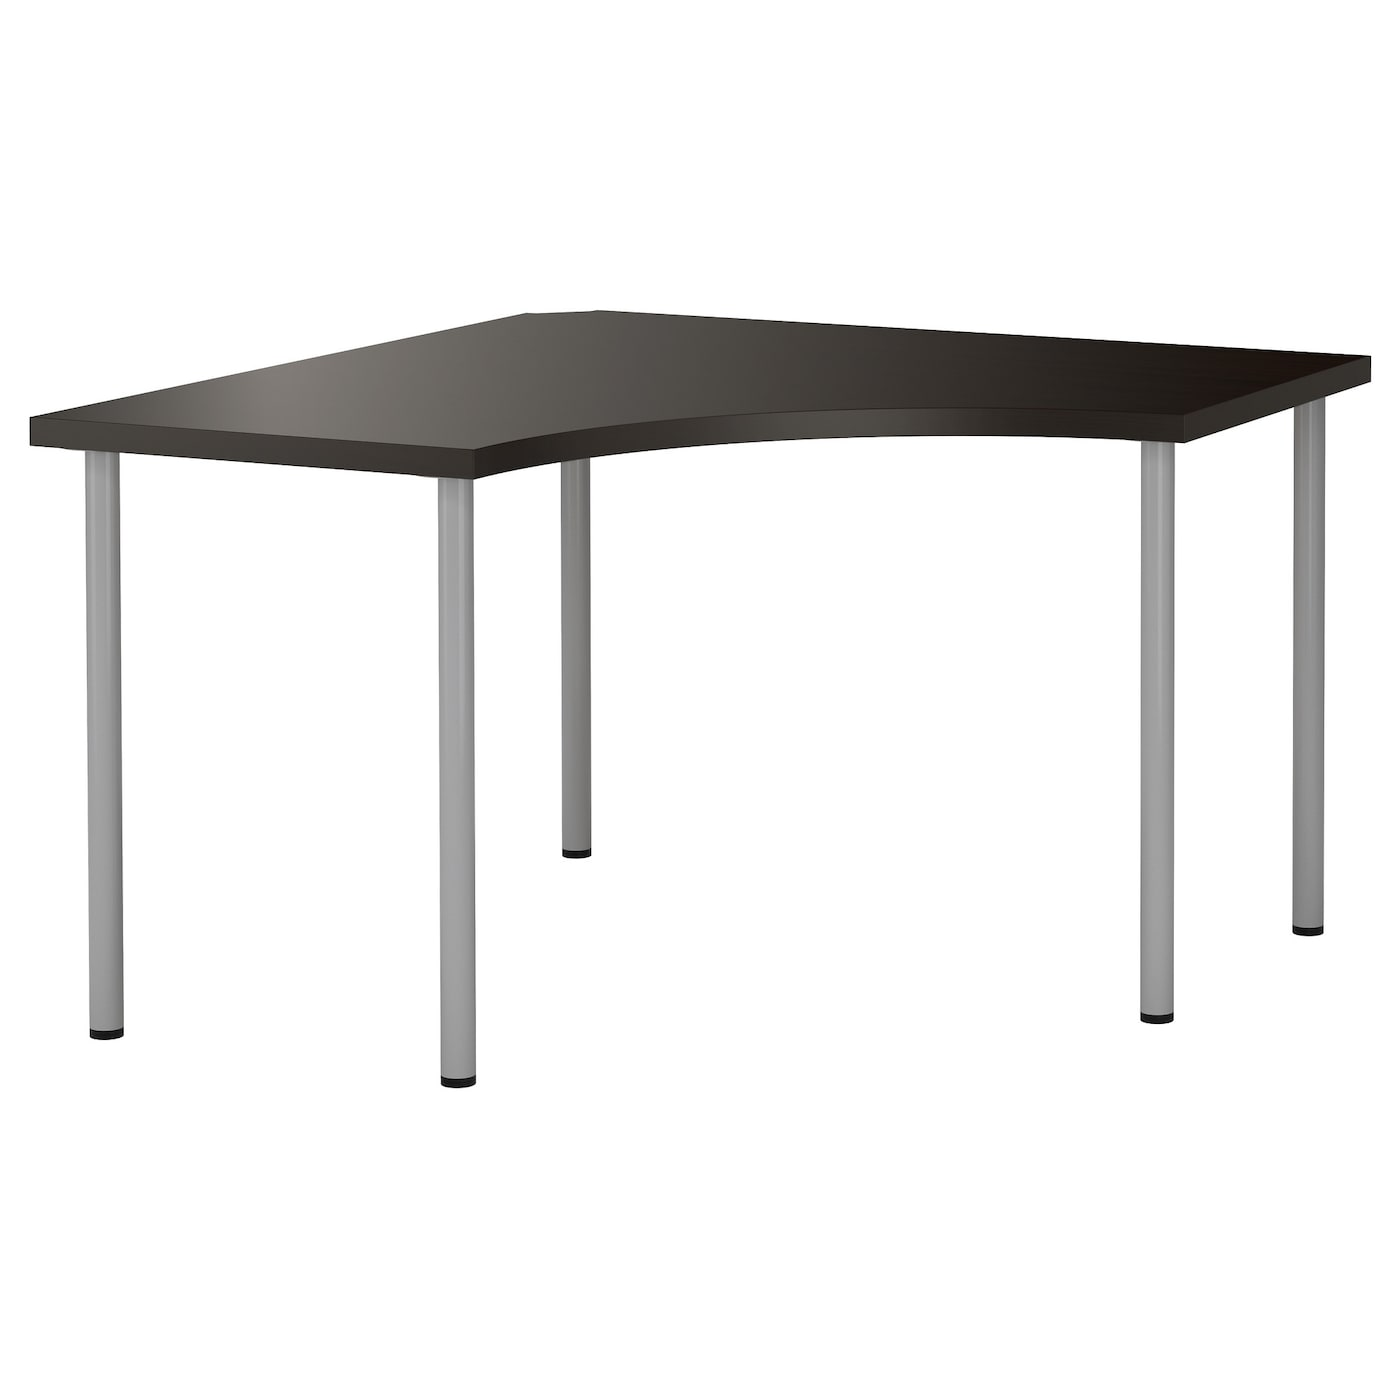 Adils Linnmon Corner Table Black Brown Silver Colour